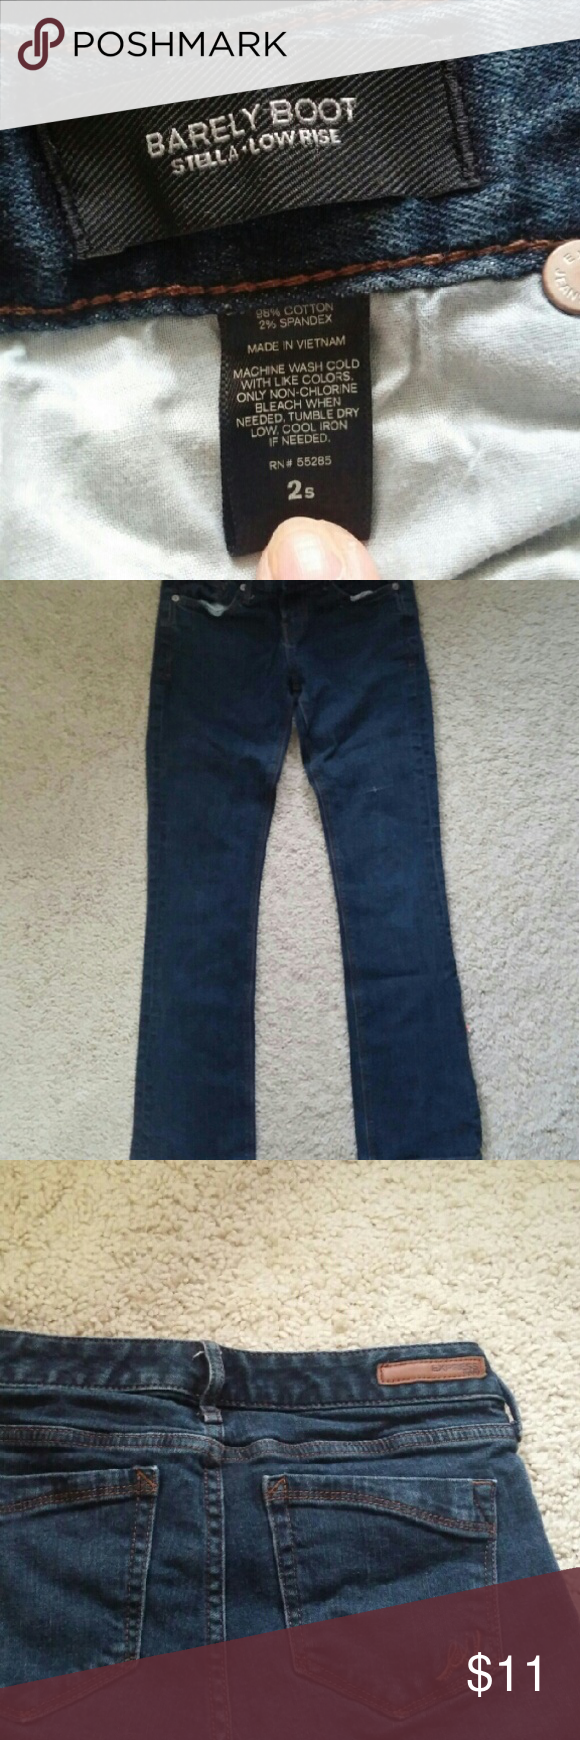 Express jeans A pair of barely boots jeans by Express. It has some nice details. There is a mark on the front left leg as shown in the last picture. Inseam is 28 and a half inches. Waist is 12 and a half inches. Express Pants Straight Leg